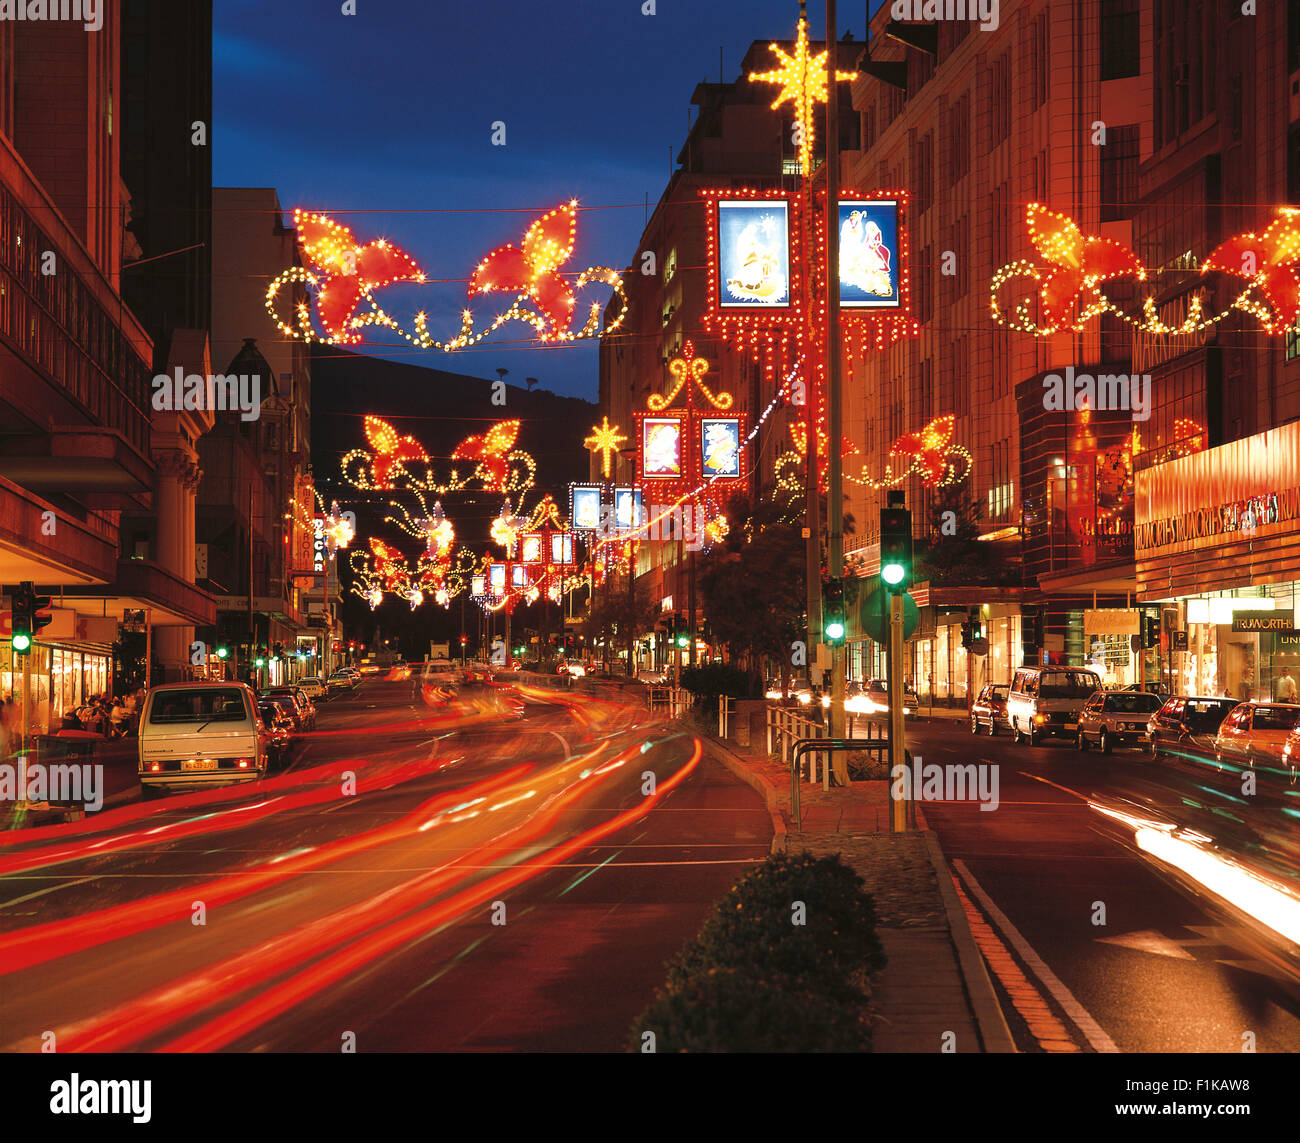 Festive Street Lights In Cape Town At Christmas. Golden